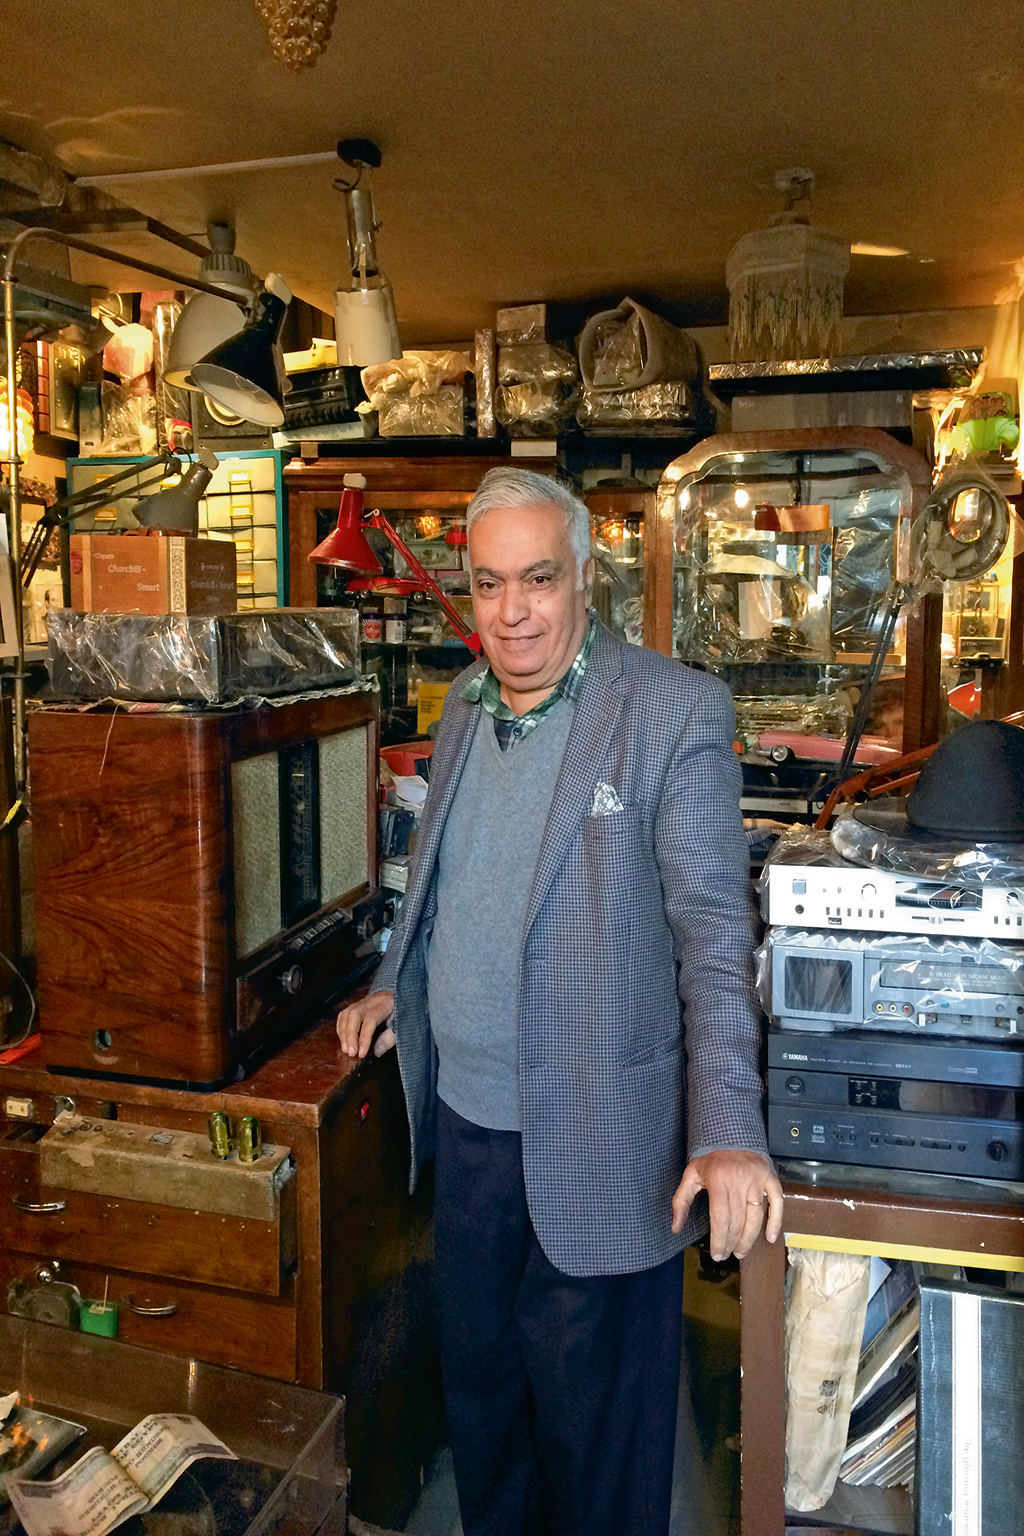 Mr. Raheb, music enthusiast and the owner of a vintage record and audio equipment shop in Zamalek, ensures that visitors have a great listening experience at his store, whether they make a purchase or not. Photo: Diya Kohli